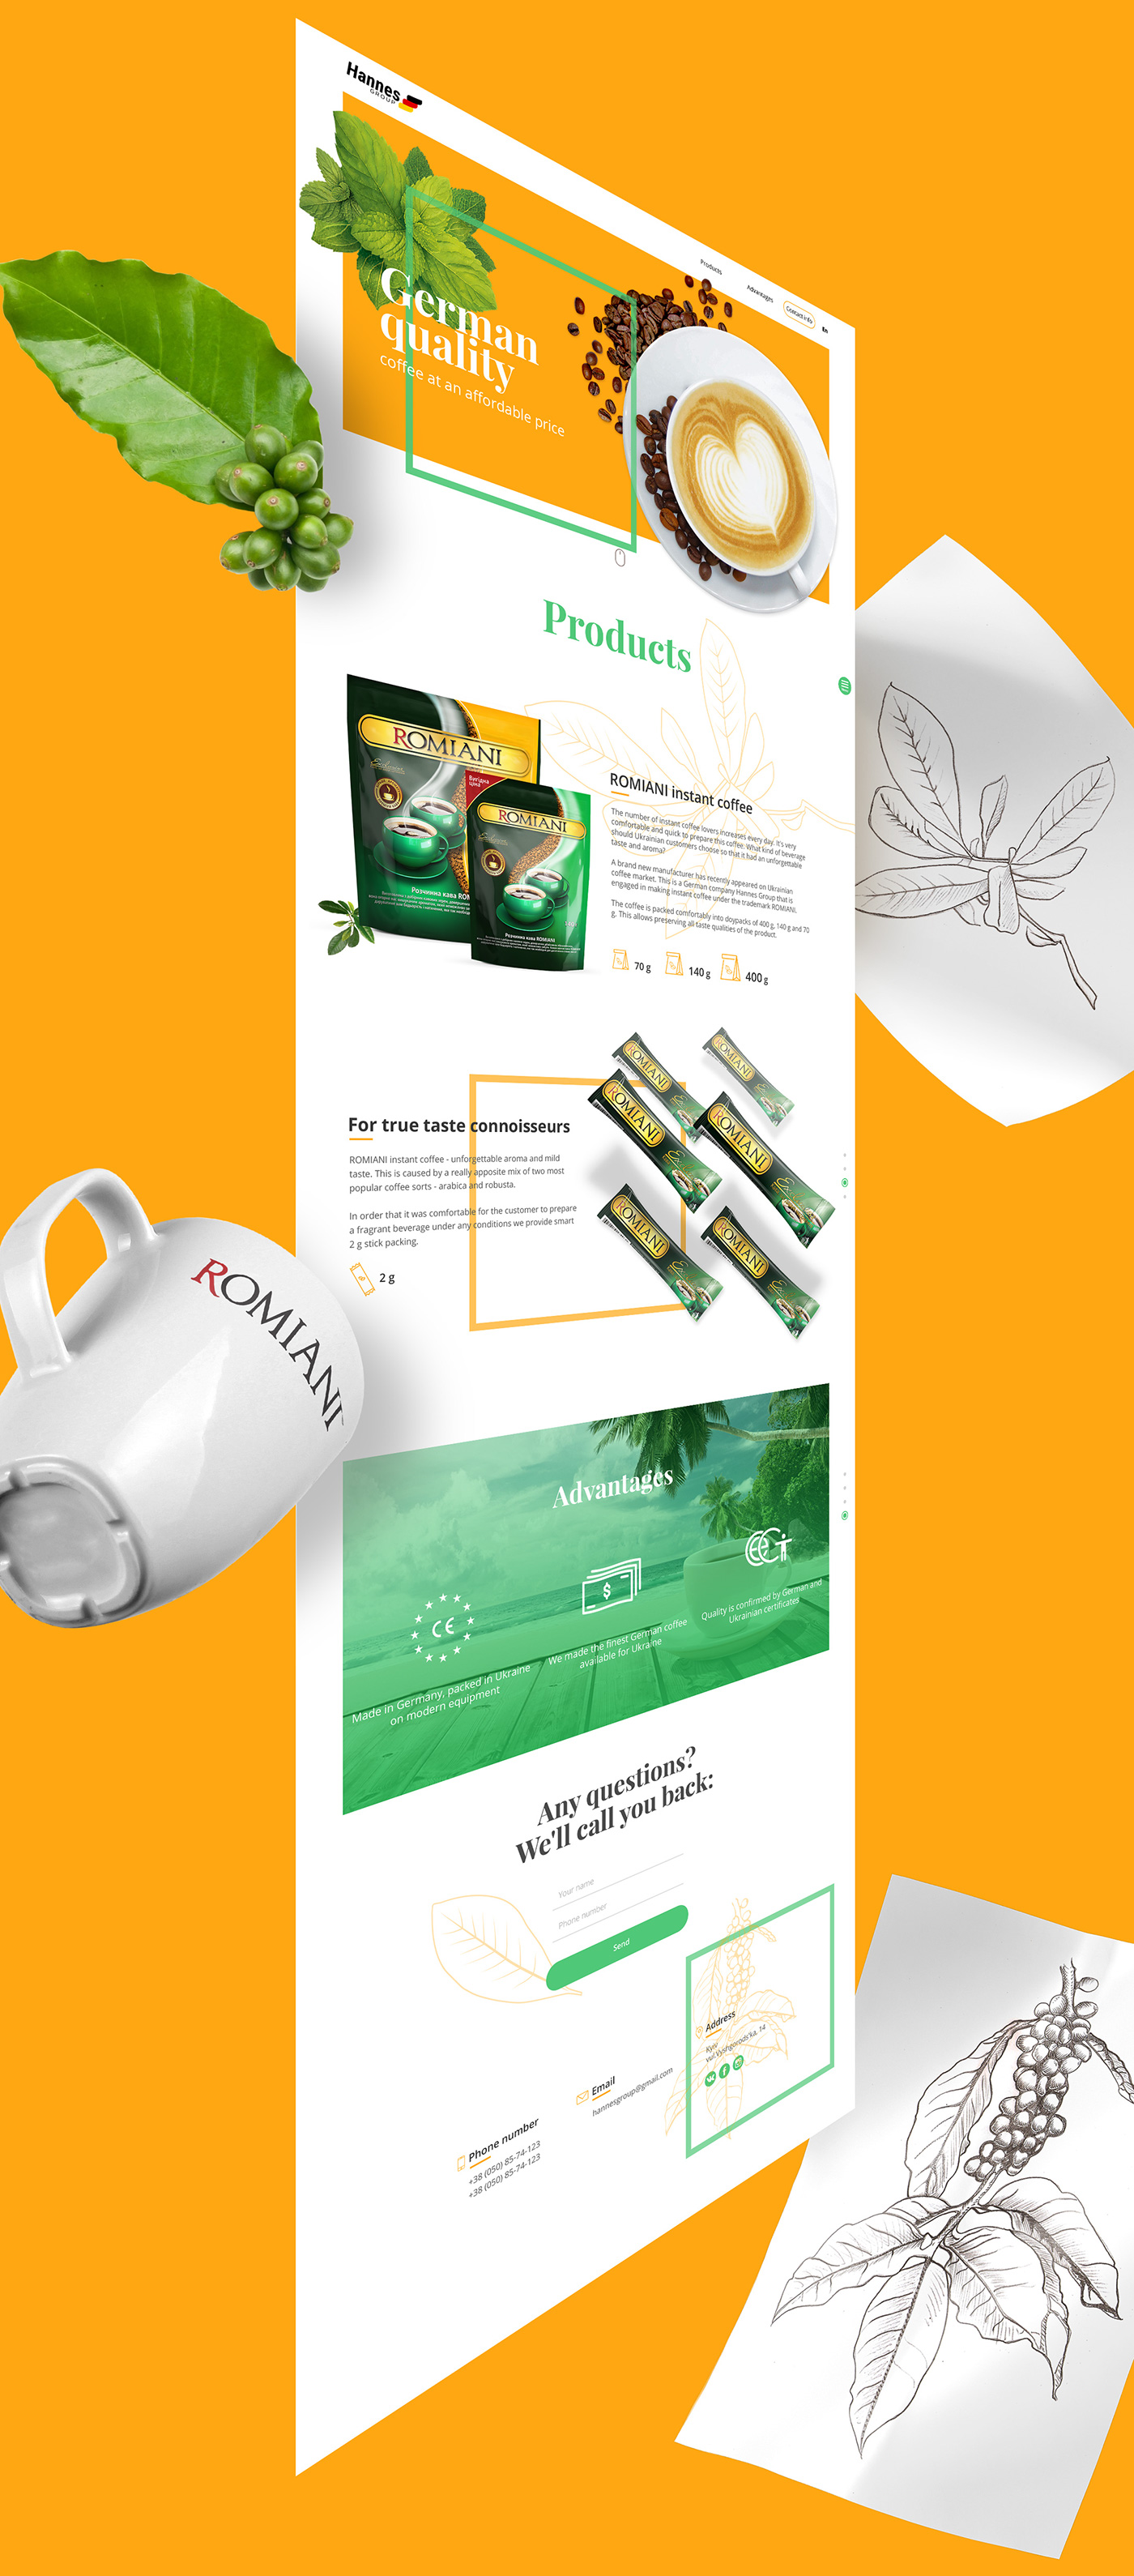 Web,Web & Mobile,UI/UX Design,Prototyping,user-experience research,coffe,package,Adobe Photoshop,adobe illustrator